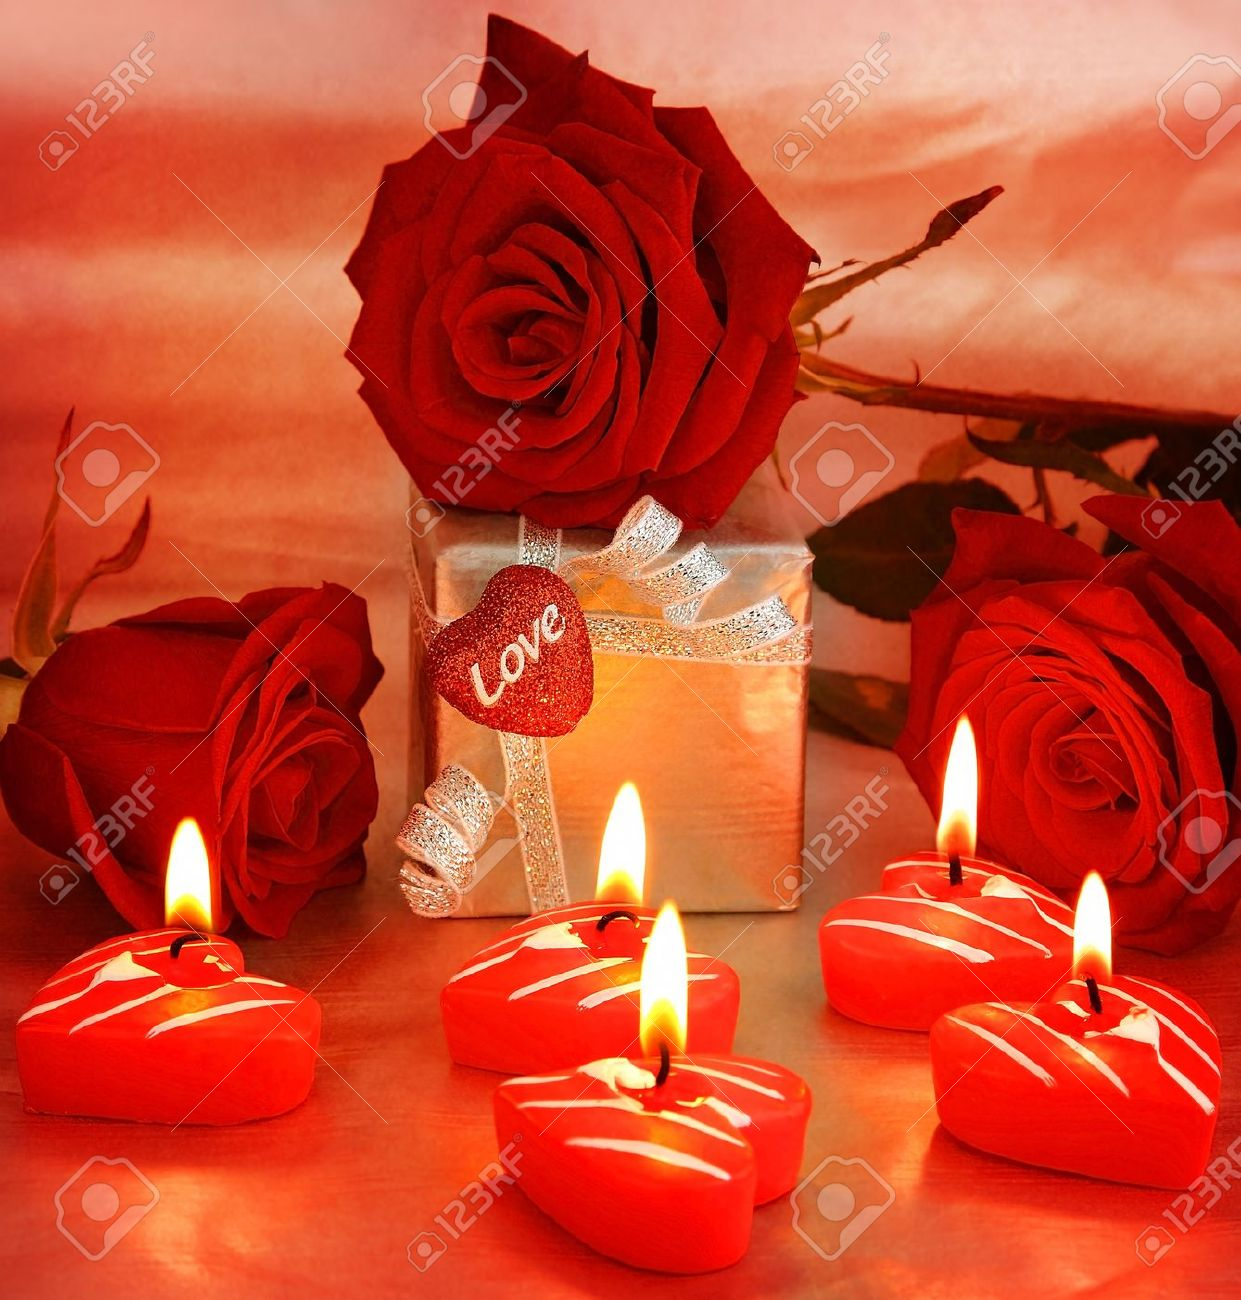 romantic gift  red roses with candles, love concept stock photo, Beautiful flower